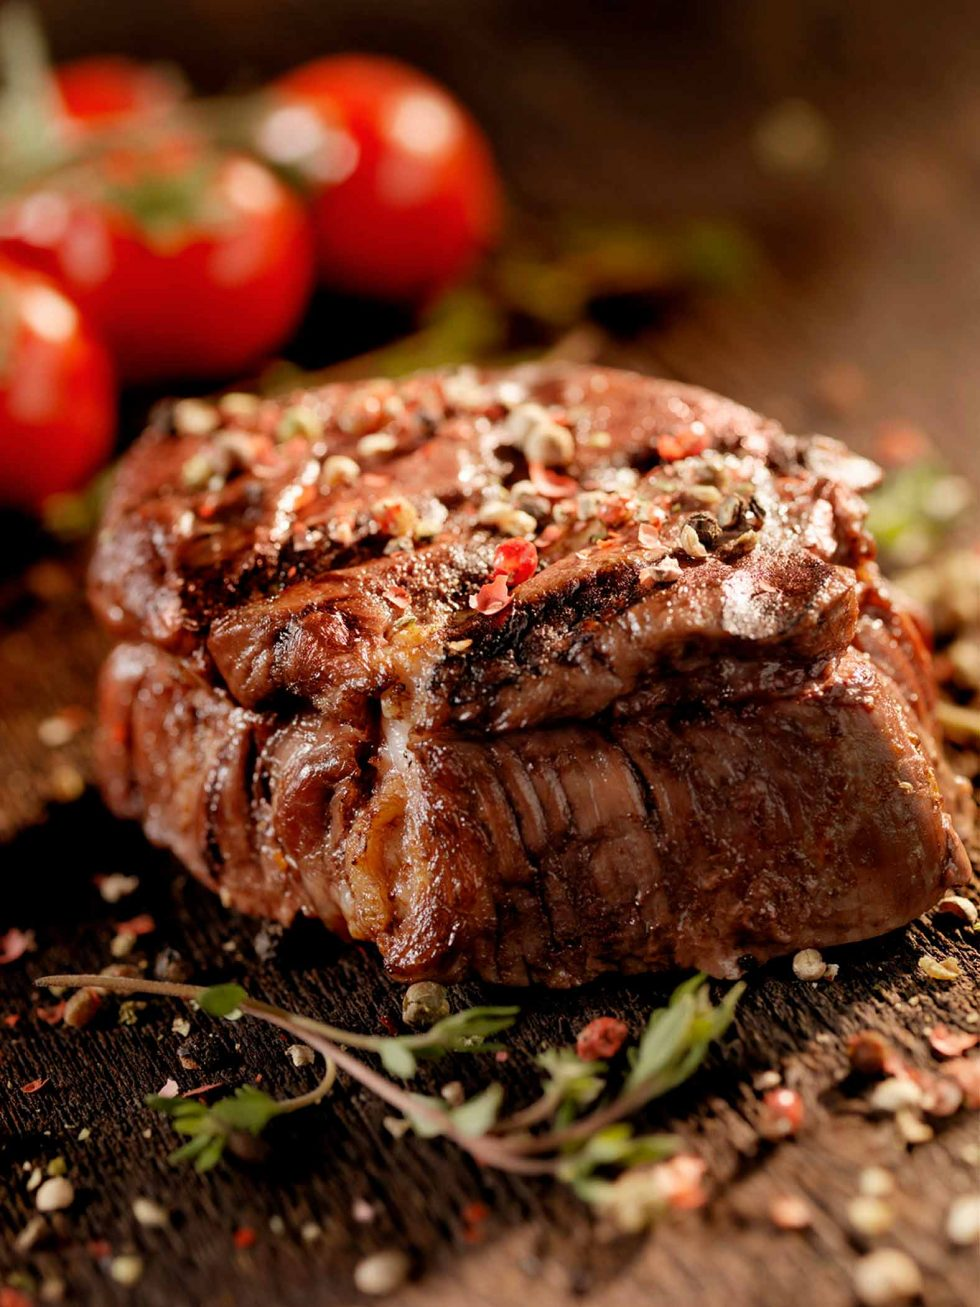 Calgary Food Photography. Perfectly cooked and seasoned steak, garnished on rustic backdrop.